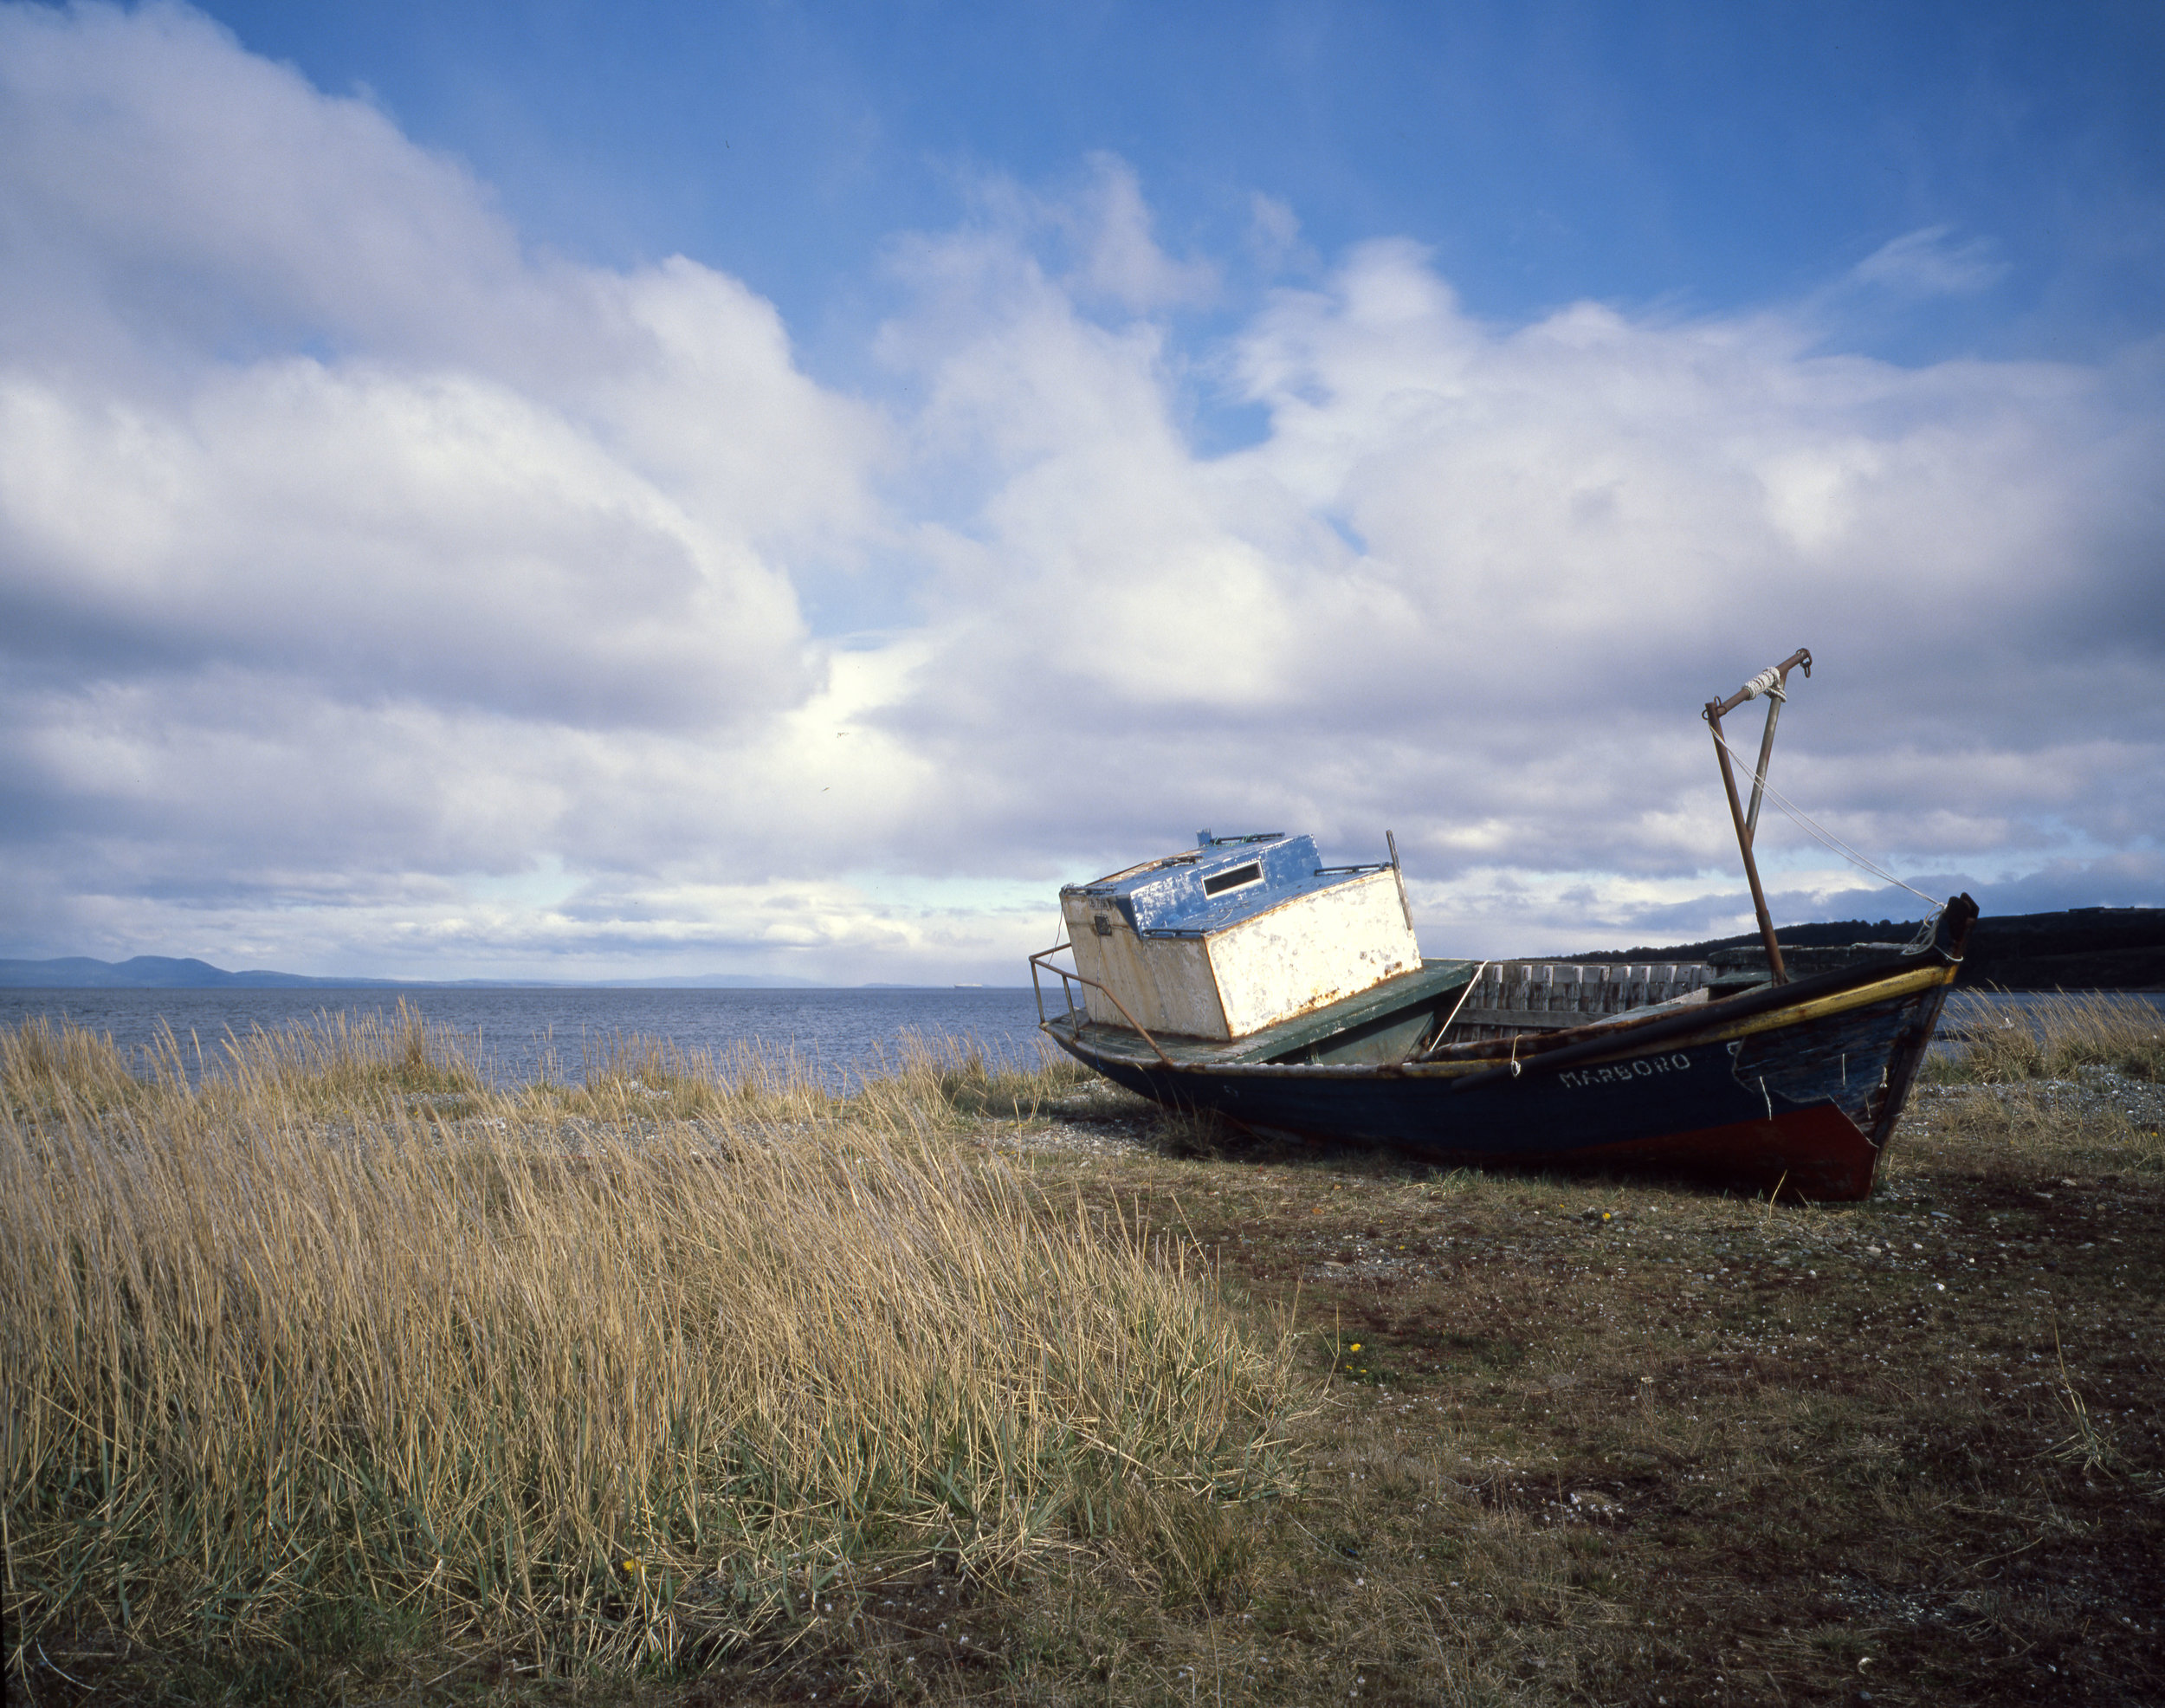 Southern Patagonia is littered with abandoned boats Fuji GF670w - Kodak E100gx